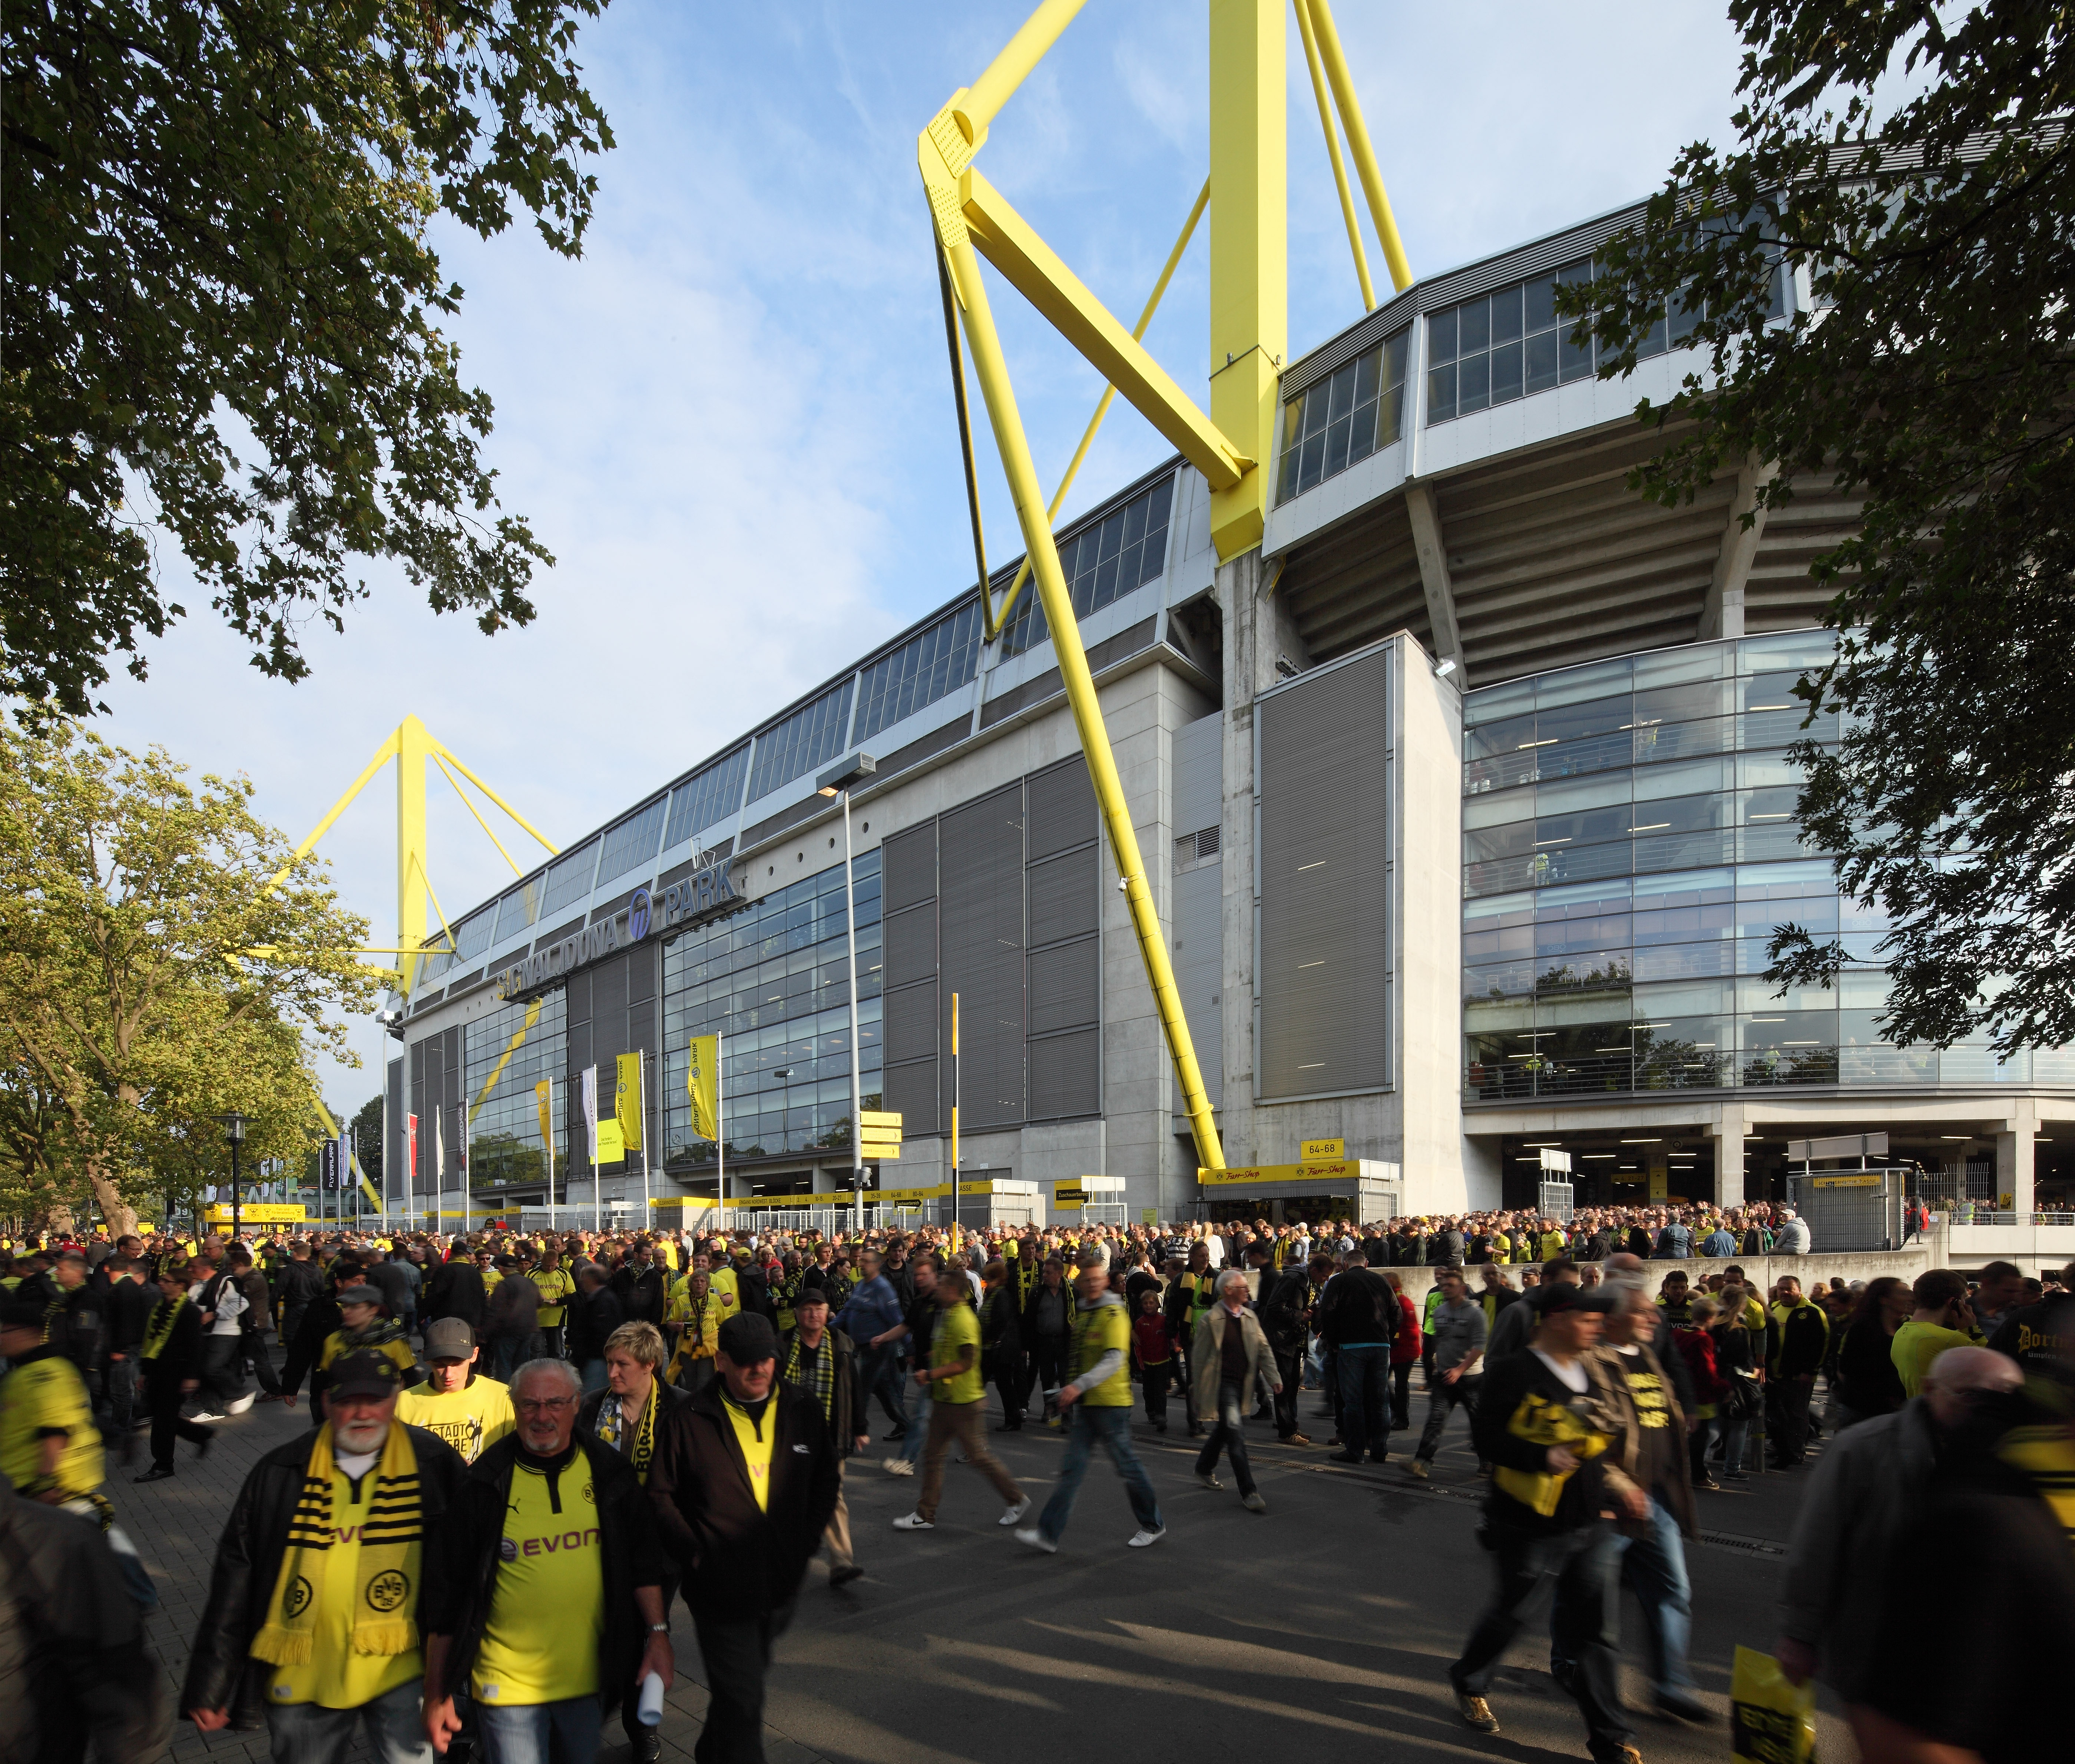 A big crowd in front of Signal Iduna Park on a matchday.